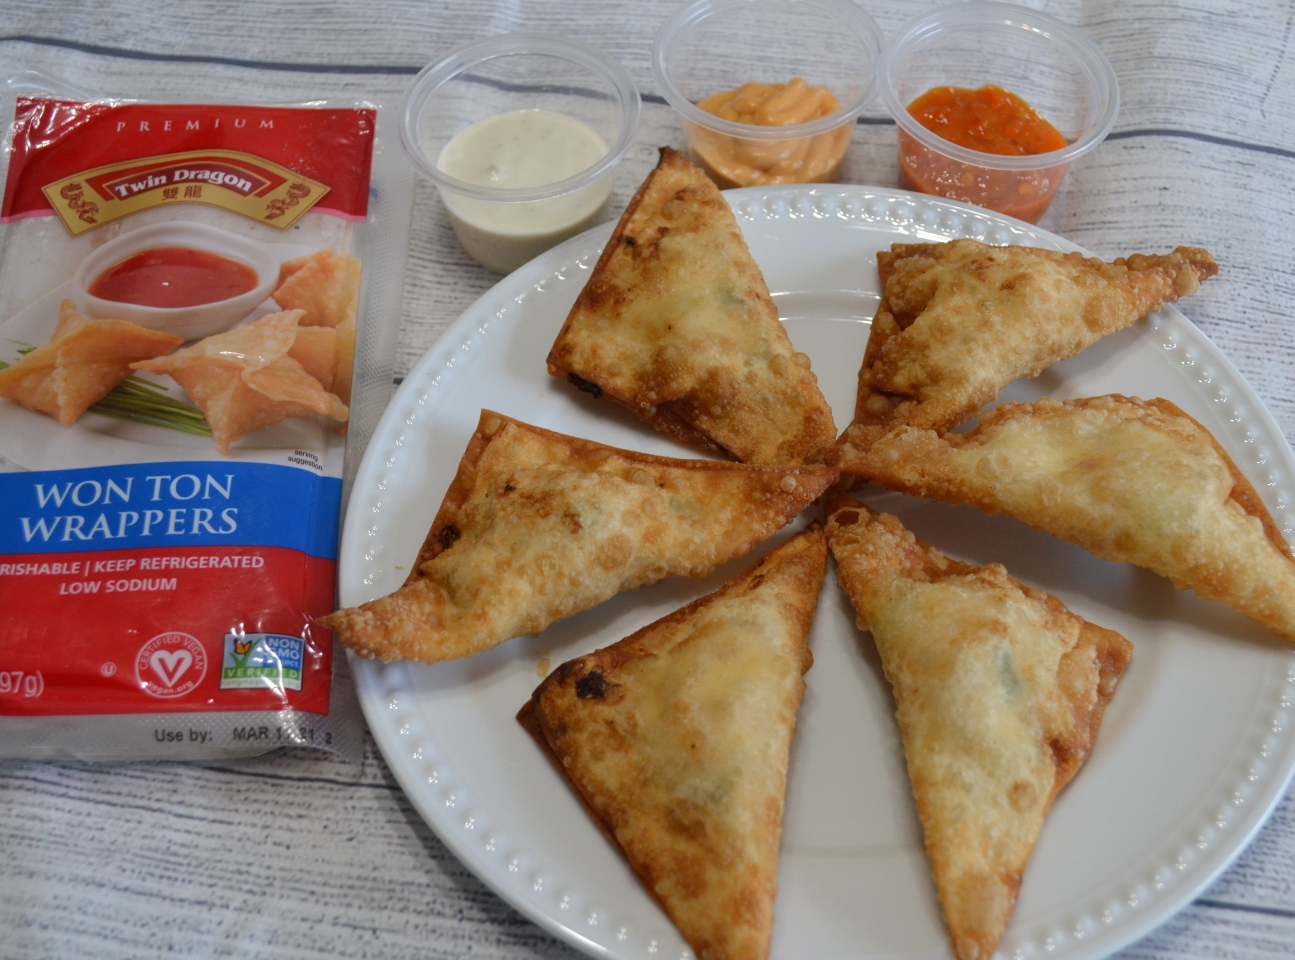 Cream Cheese Asian Chicken wontons are appetizers crispy on the outside and filled with ground chicken, cream cheese, and sweet chili sauce.